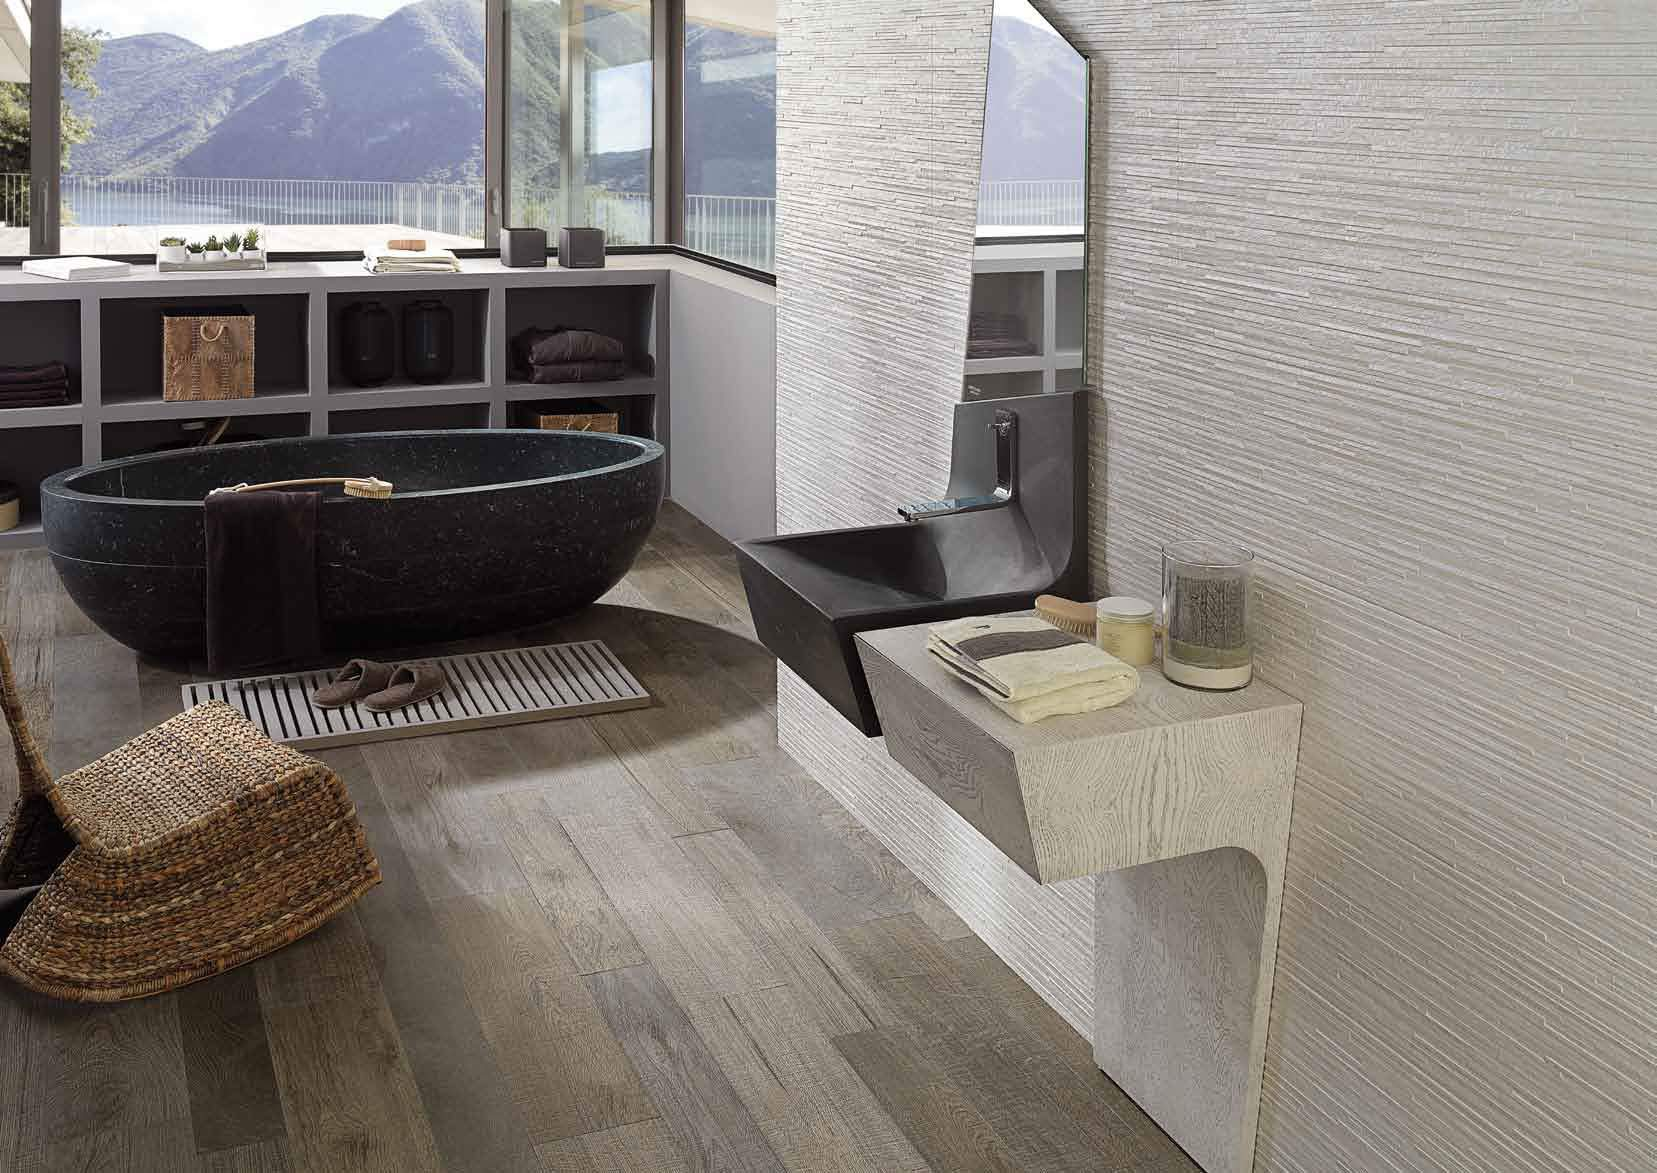 Porcelanosa jersey nieve pv 31 6x90 p34705691 for Bathroom designs in jamaica